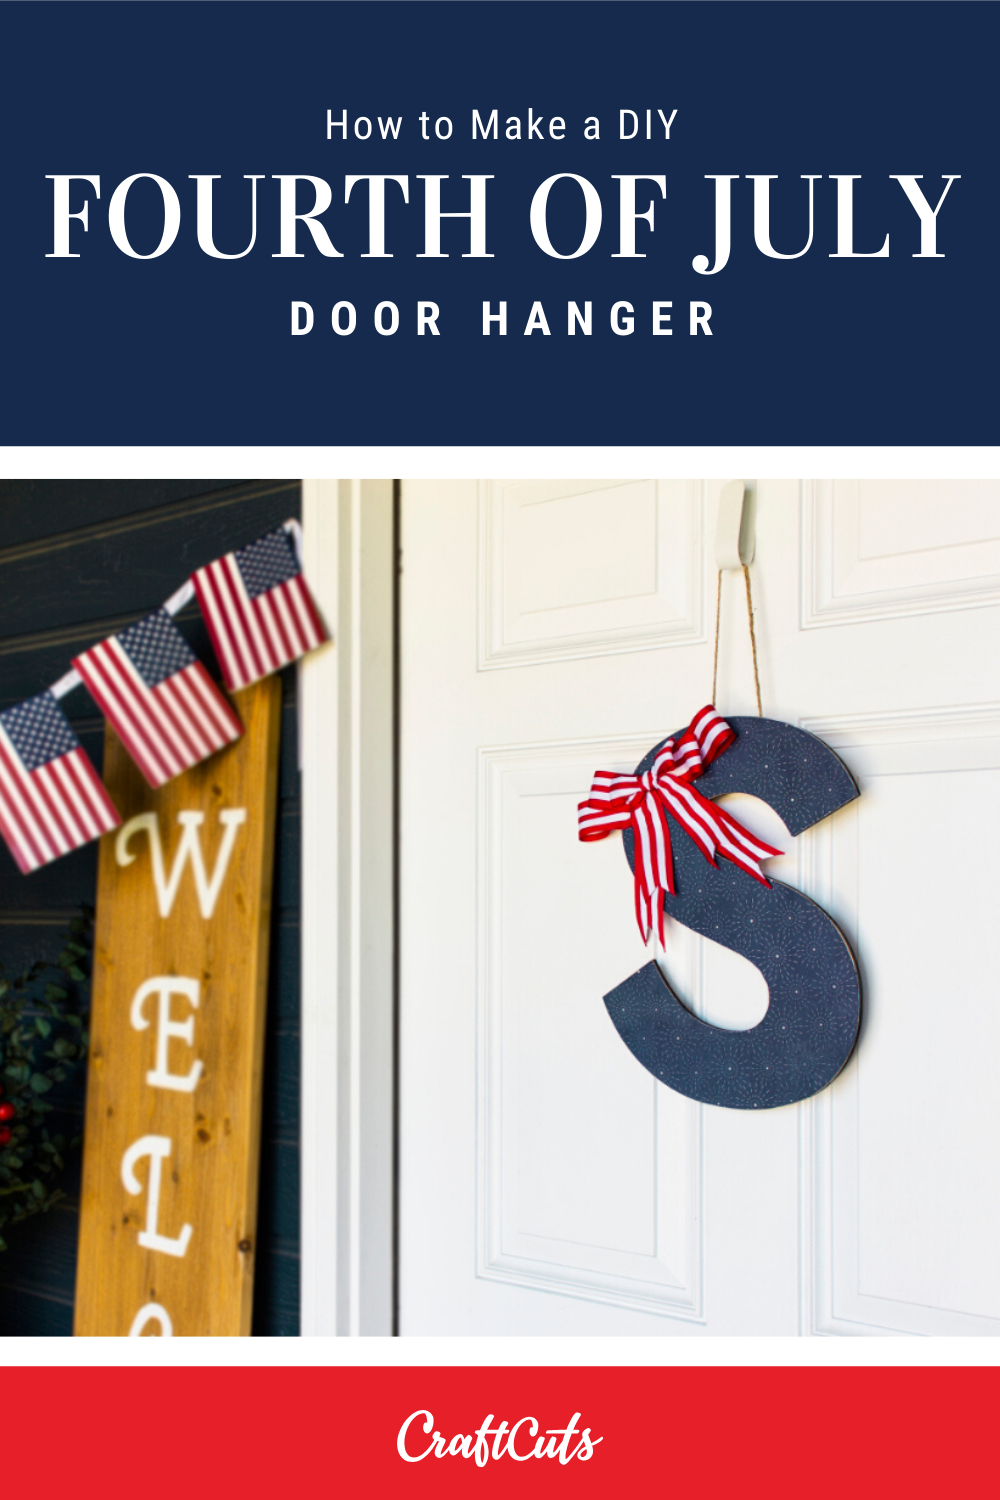 How To Make A Fourth Of July Door Hanger Craftcuts Com Wood Letters Door Hangers Letter Door Hangers